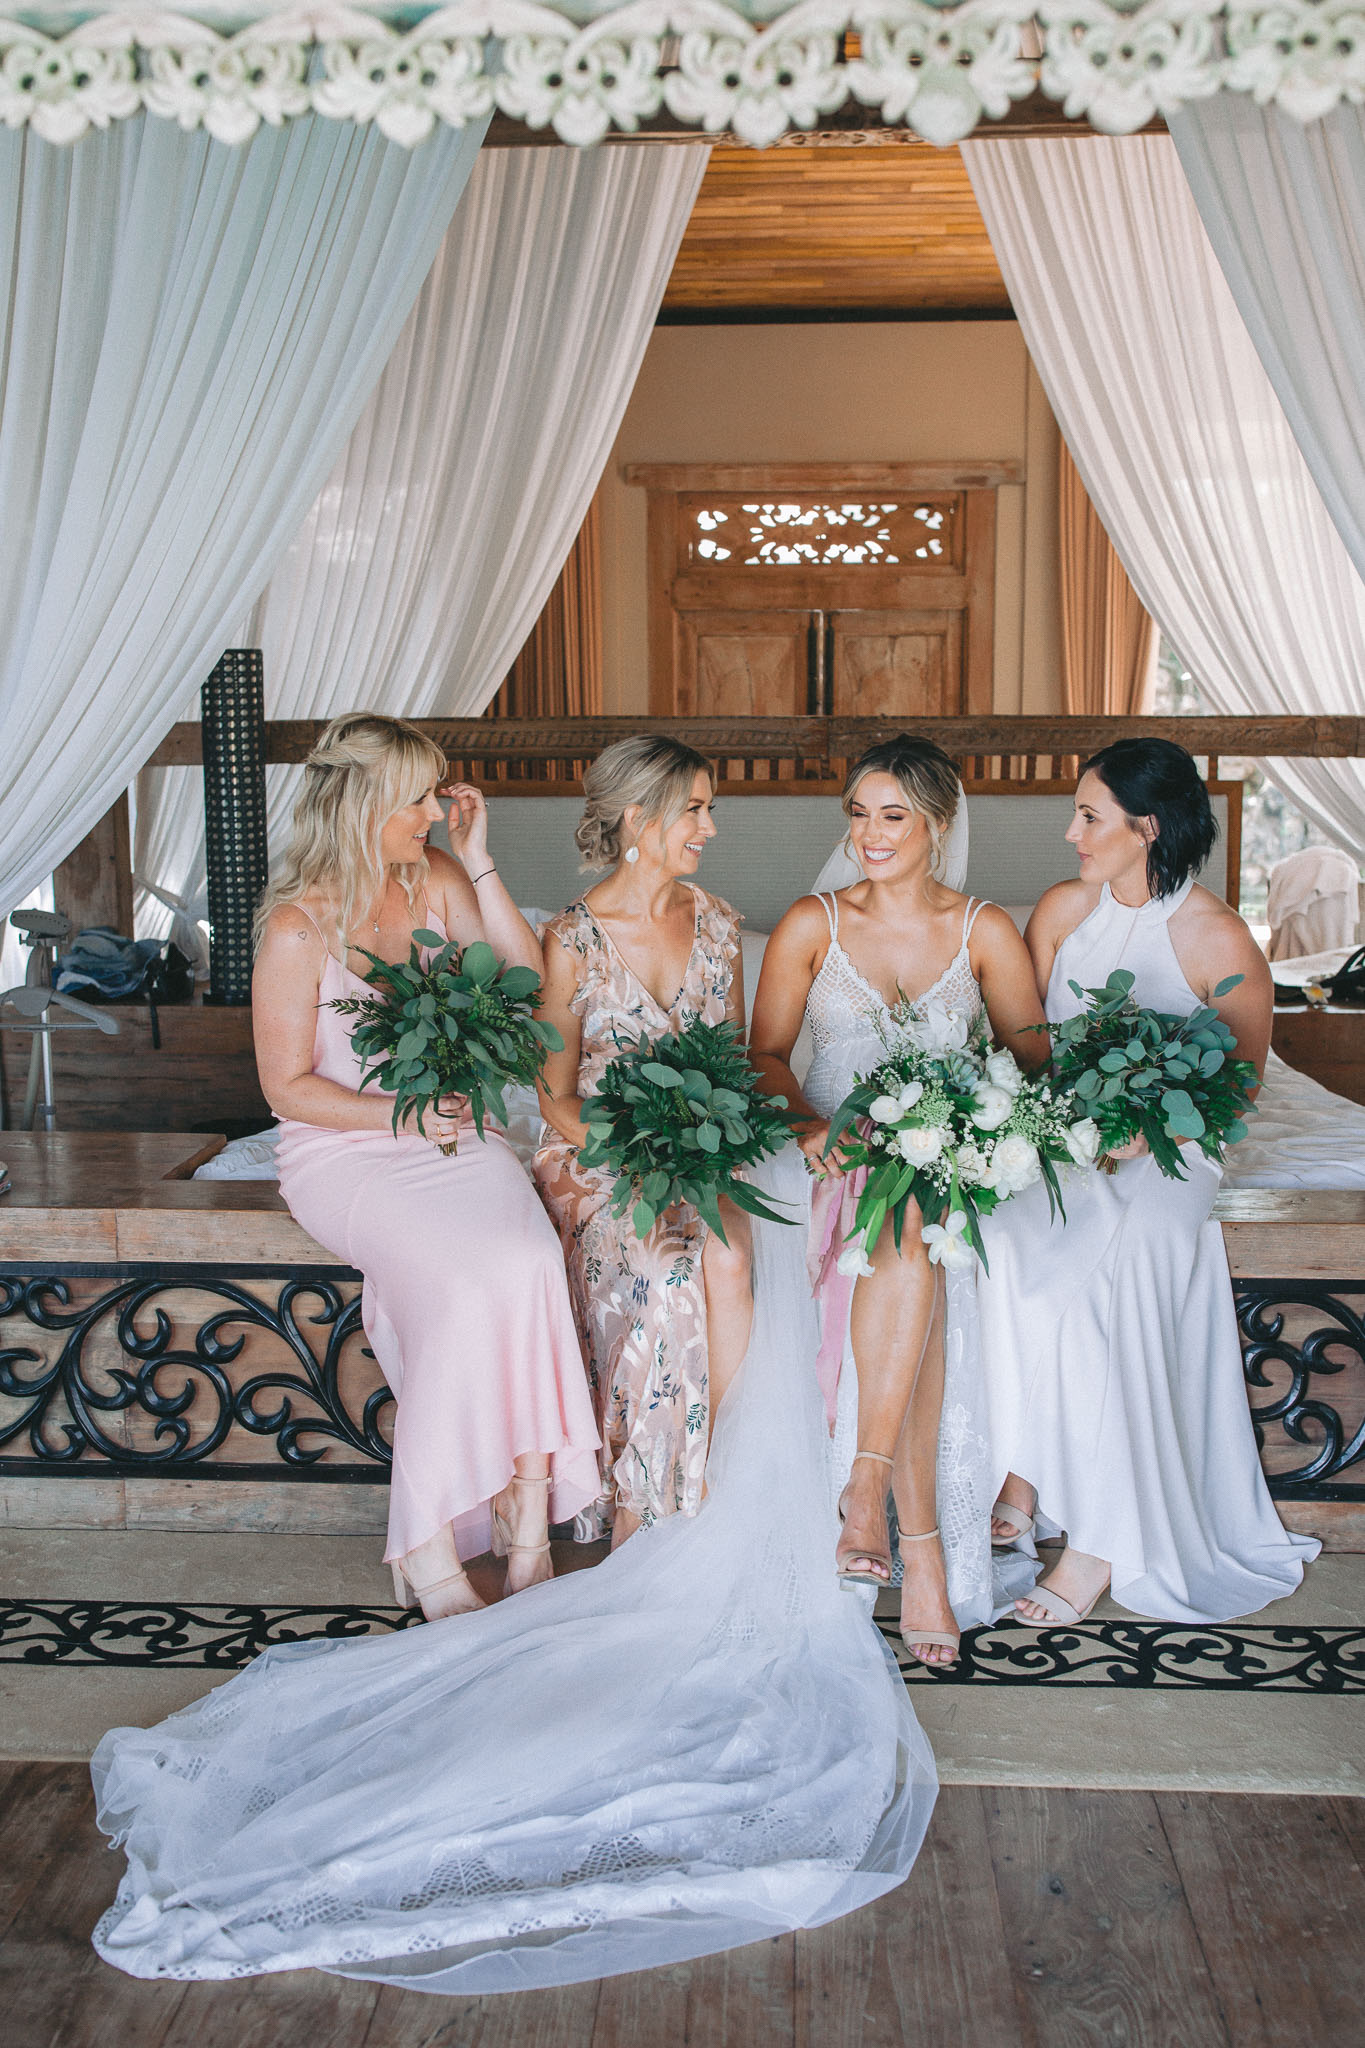 Khayangan Estate Bali Wedding Von Kiel Kat Rollings Photography bride and bridesmaids sitting on the bed